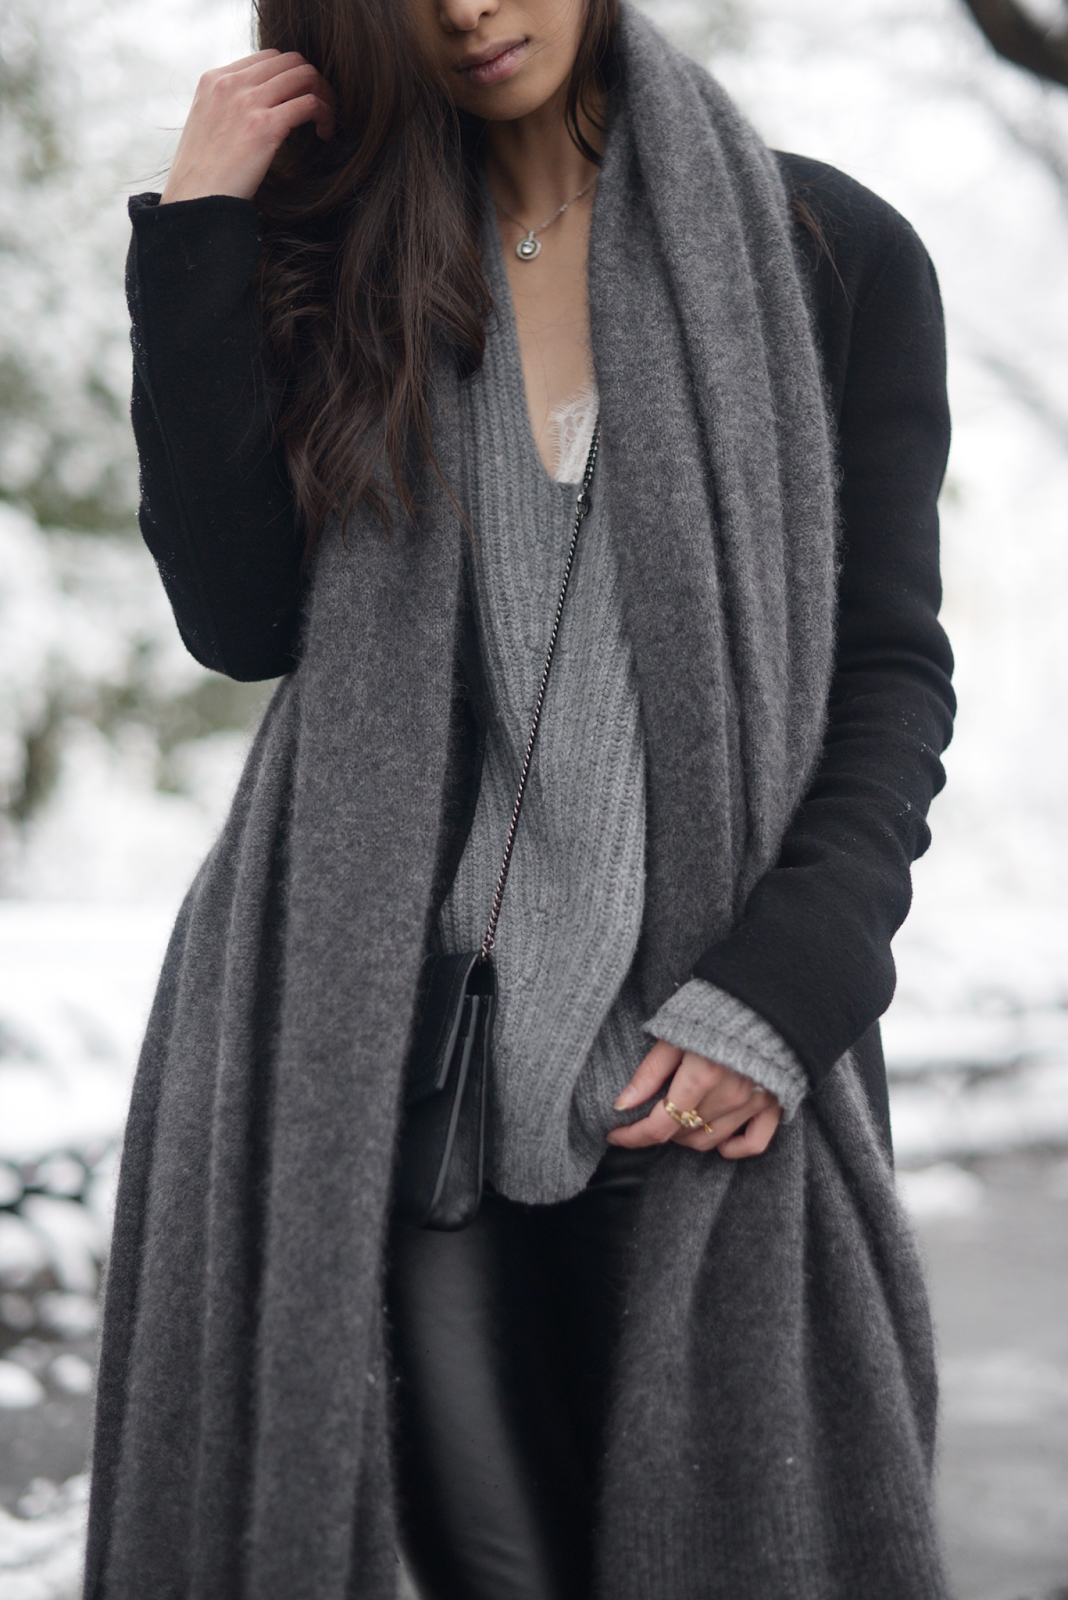 Accessorise your winter outfit with an oversized cashmere scarf and silver jewellery to get Vanny's cute and stylish aesthetic. Keeping the look greyscale will also make it ultra sophisticated. Sweater: Acne, Coat: Alexander Wang, Leggings: David Warner.